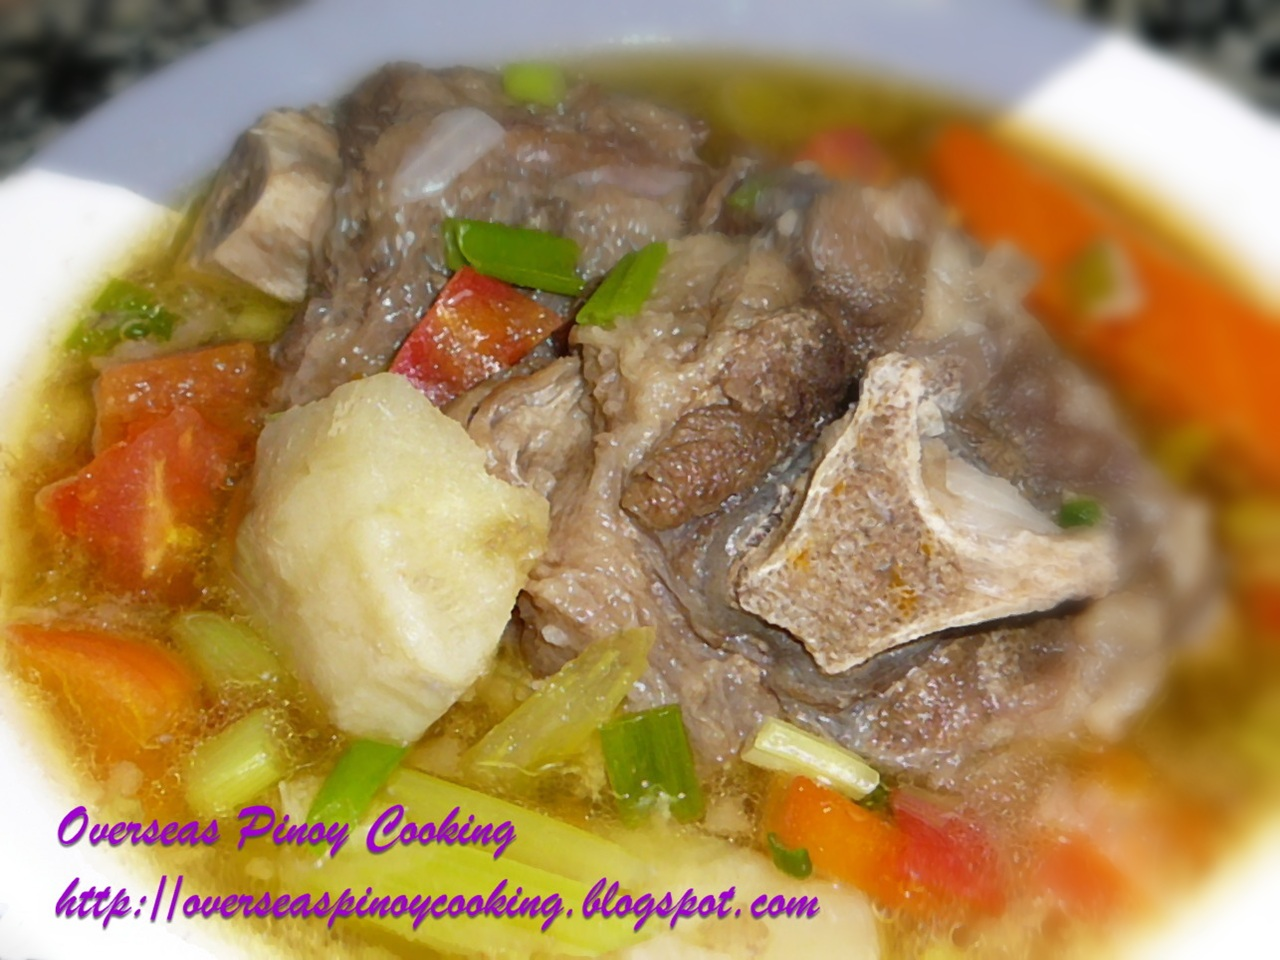 Sop Buntut, Sup Buntut, Indonesian Oxtail Soup